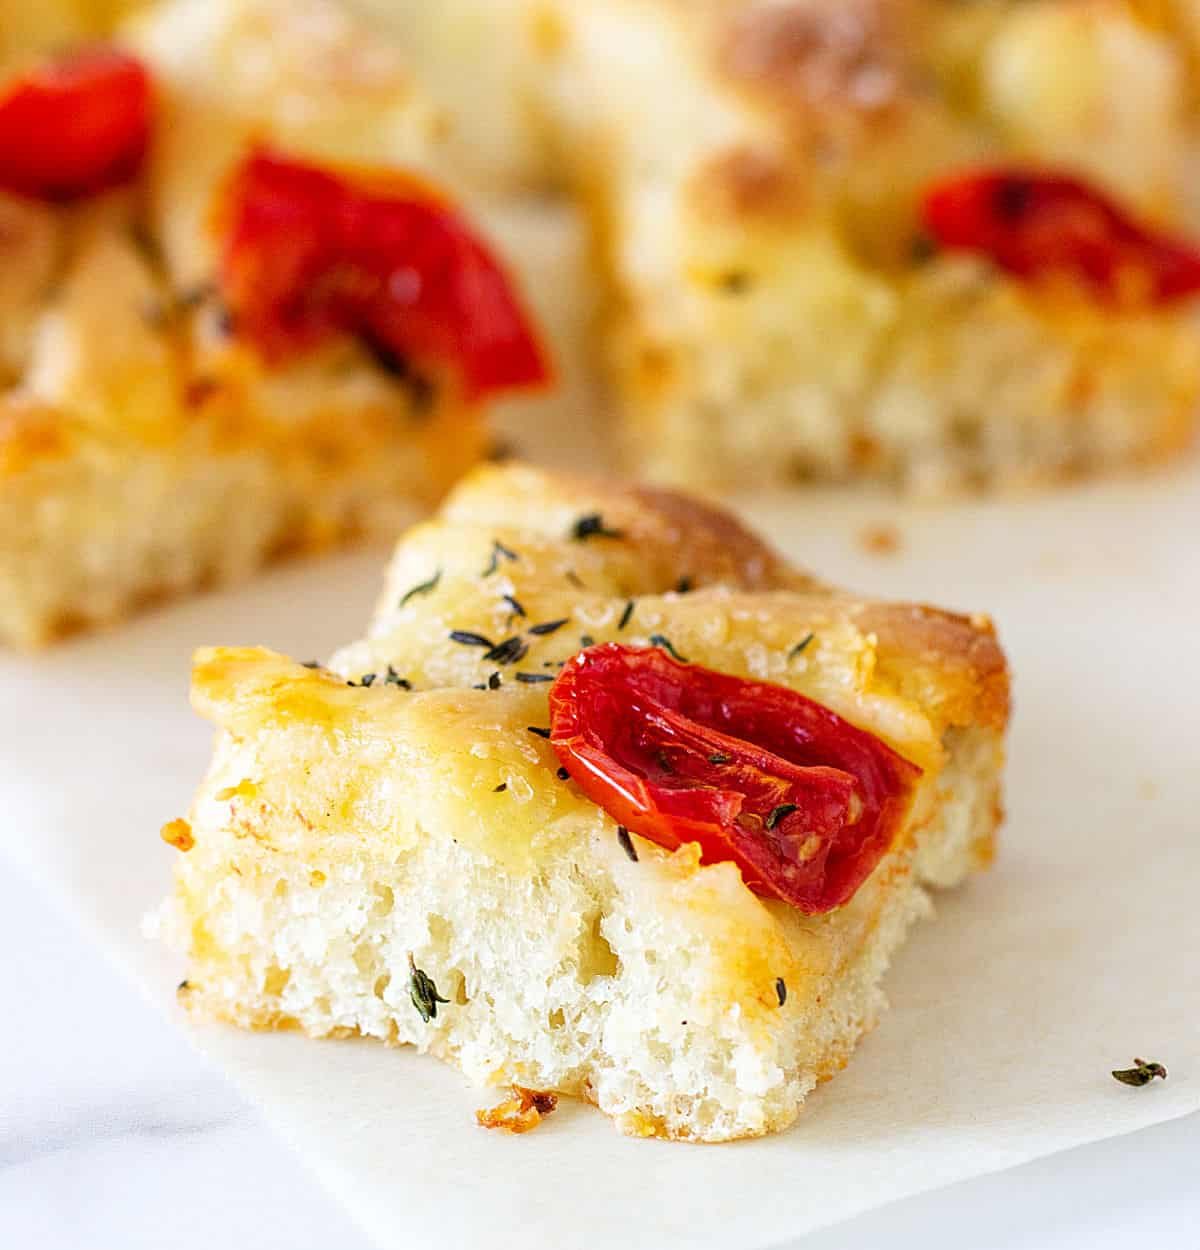 Single square of focaccia with tomato on white surface